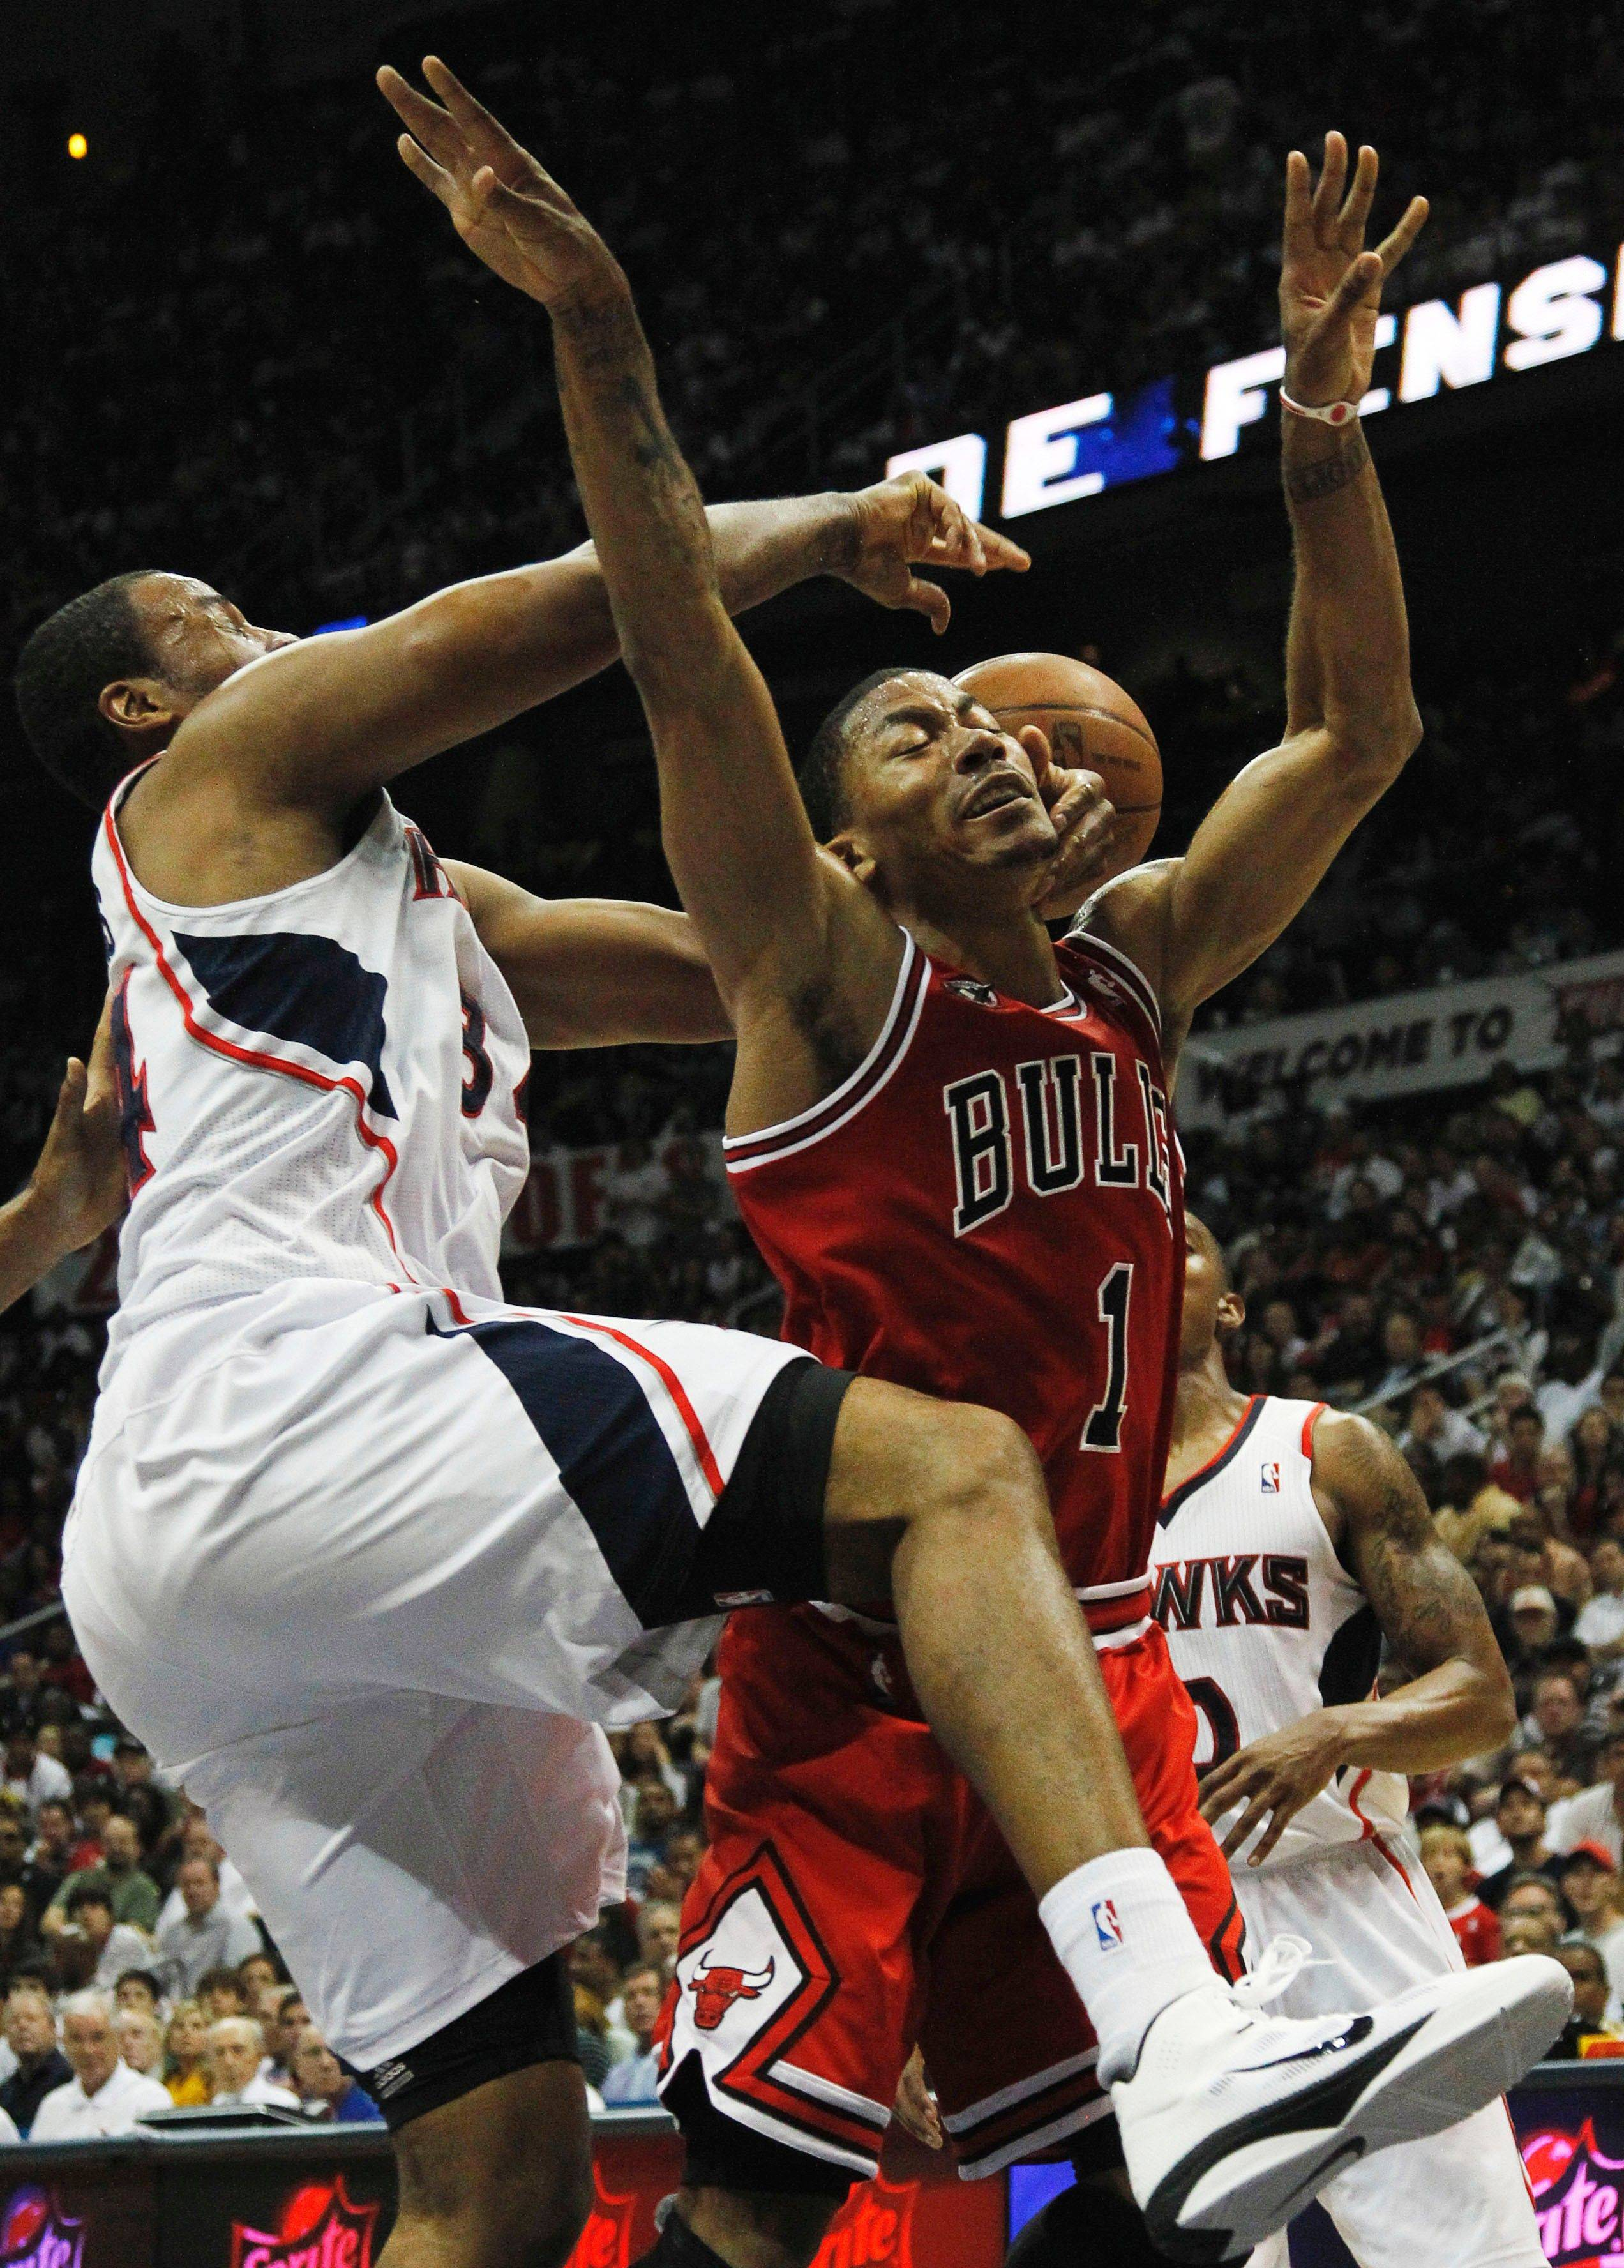 Derrick Rose (1) has his shot blocked by Atlanta Hawks center Jason Collins, left and guard Jeff Teague, right, in the third quarter of Game 4.